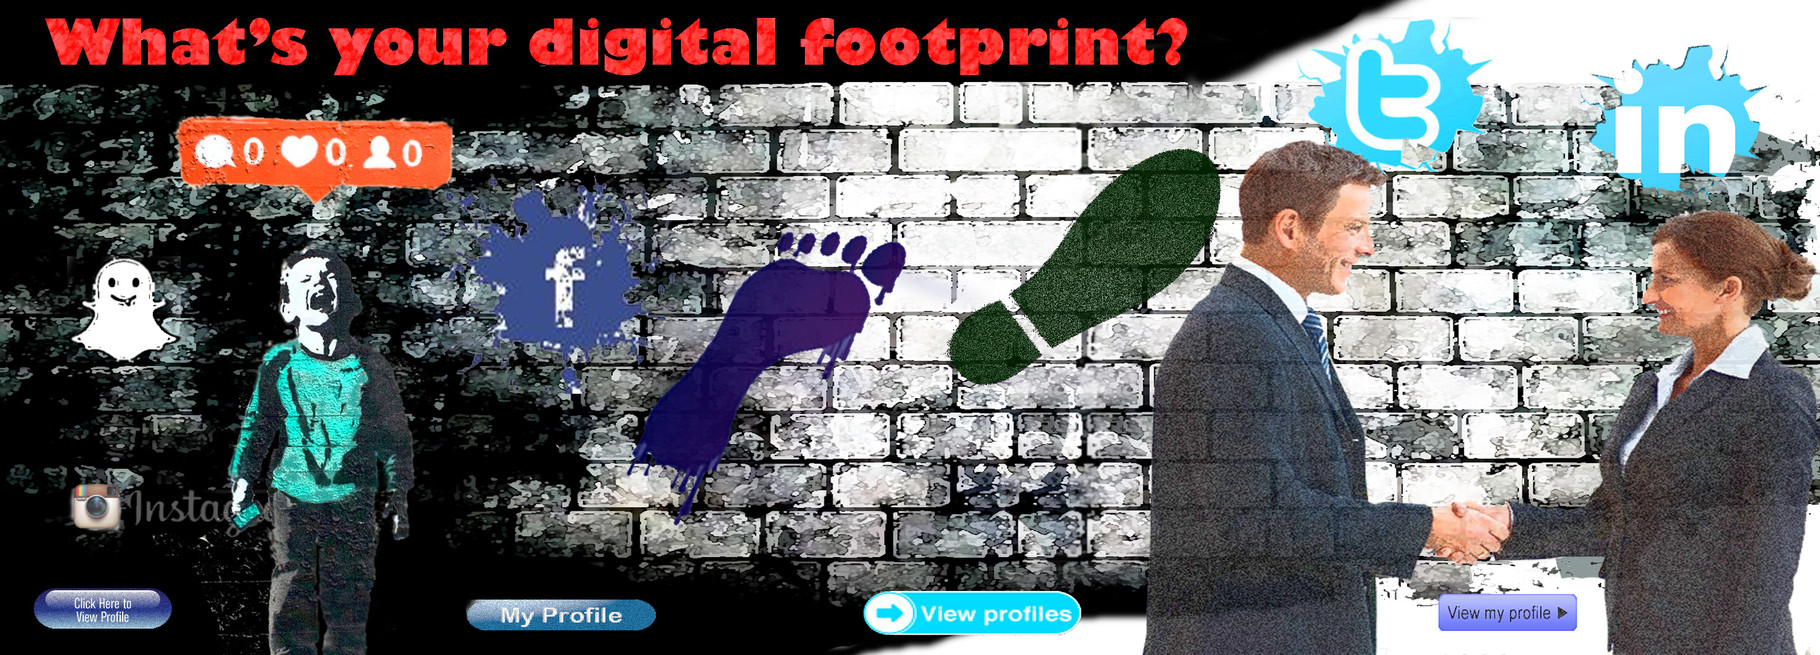 Sheffield University Digital footprint page header